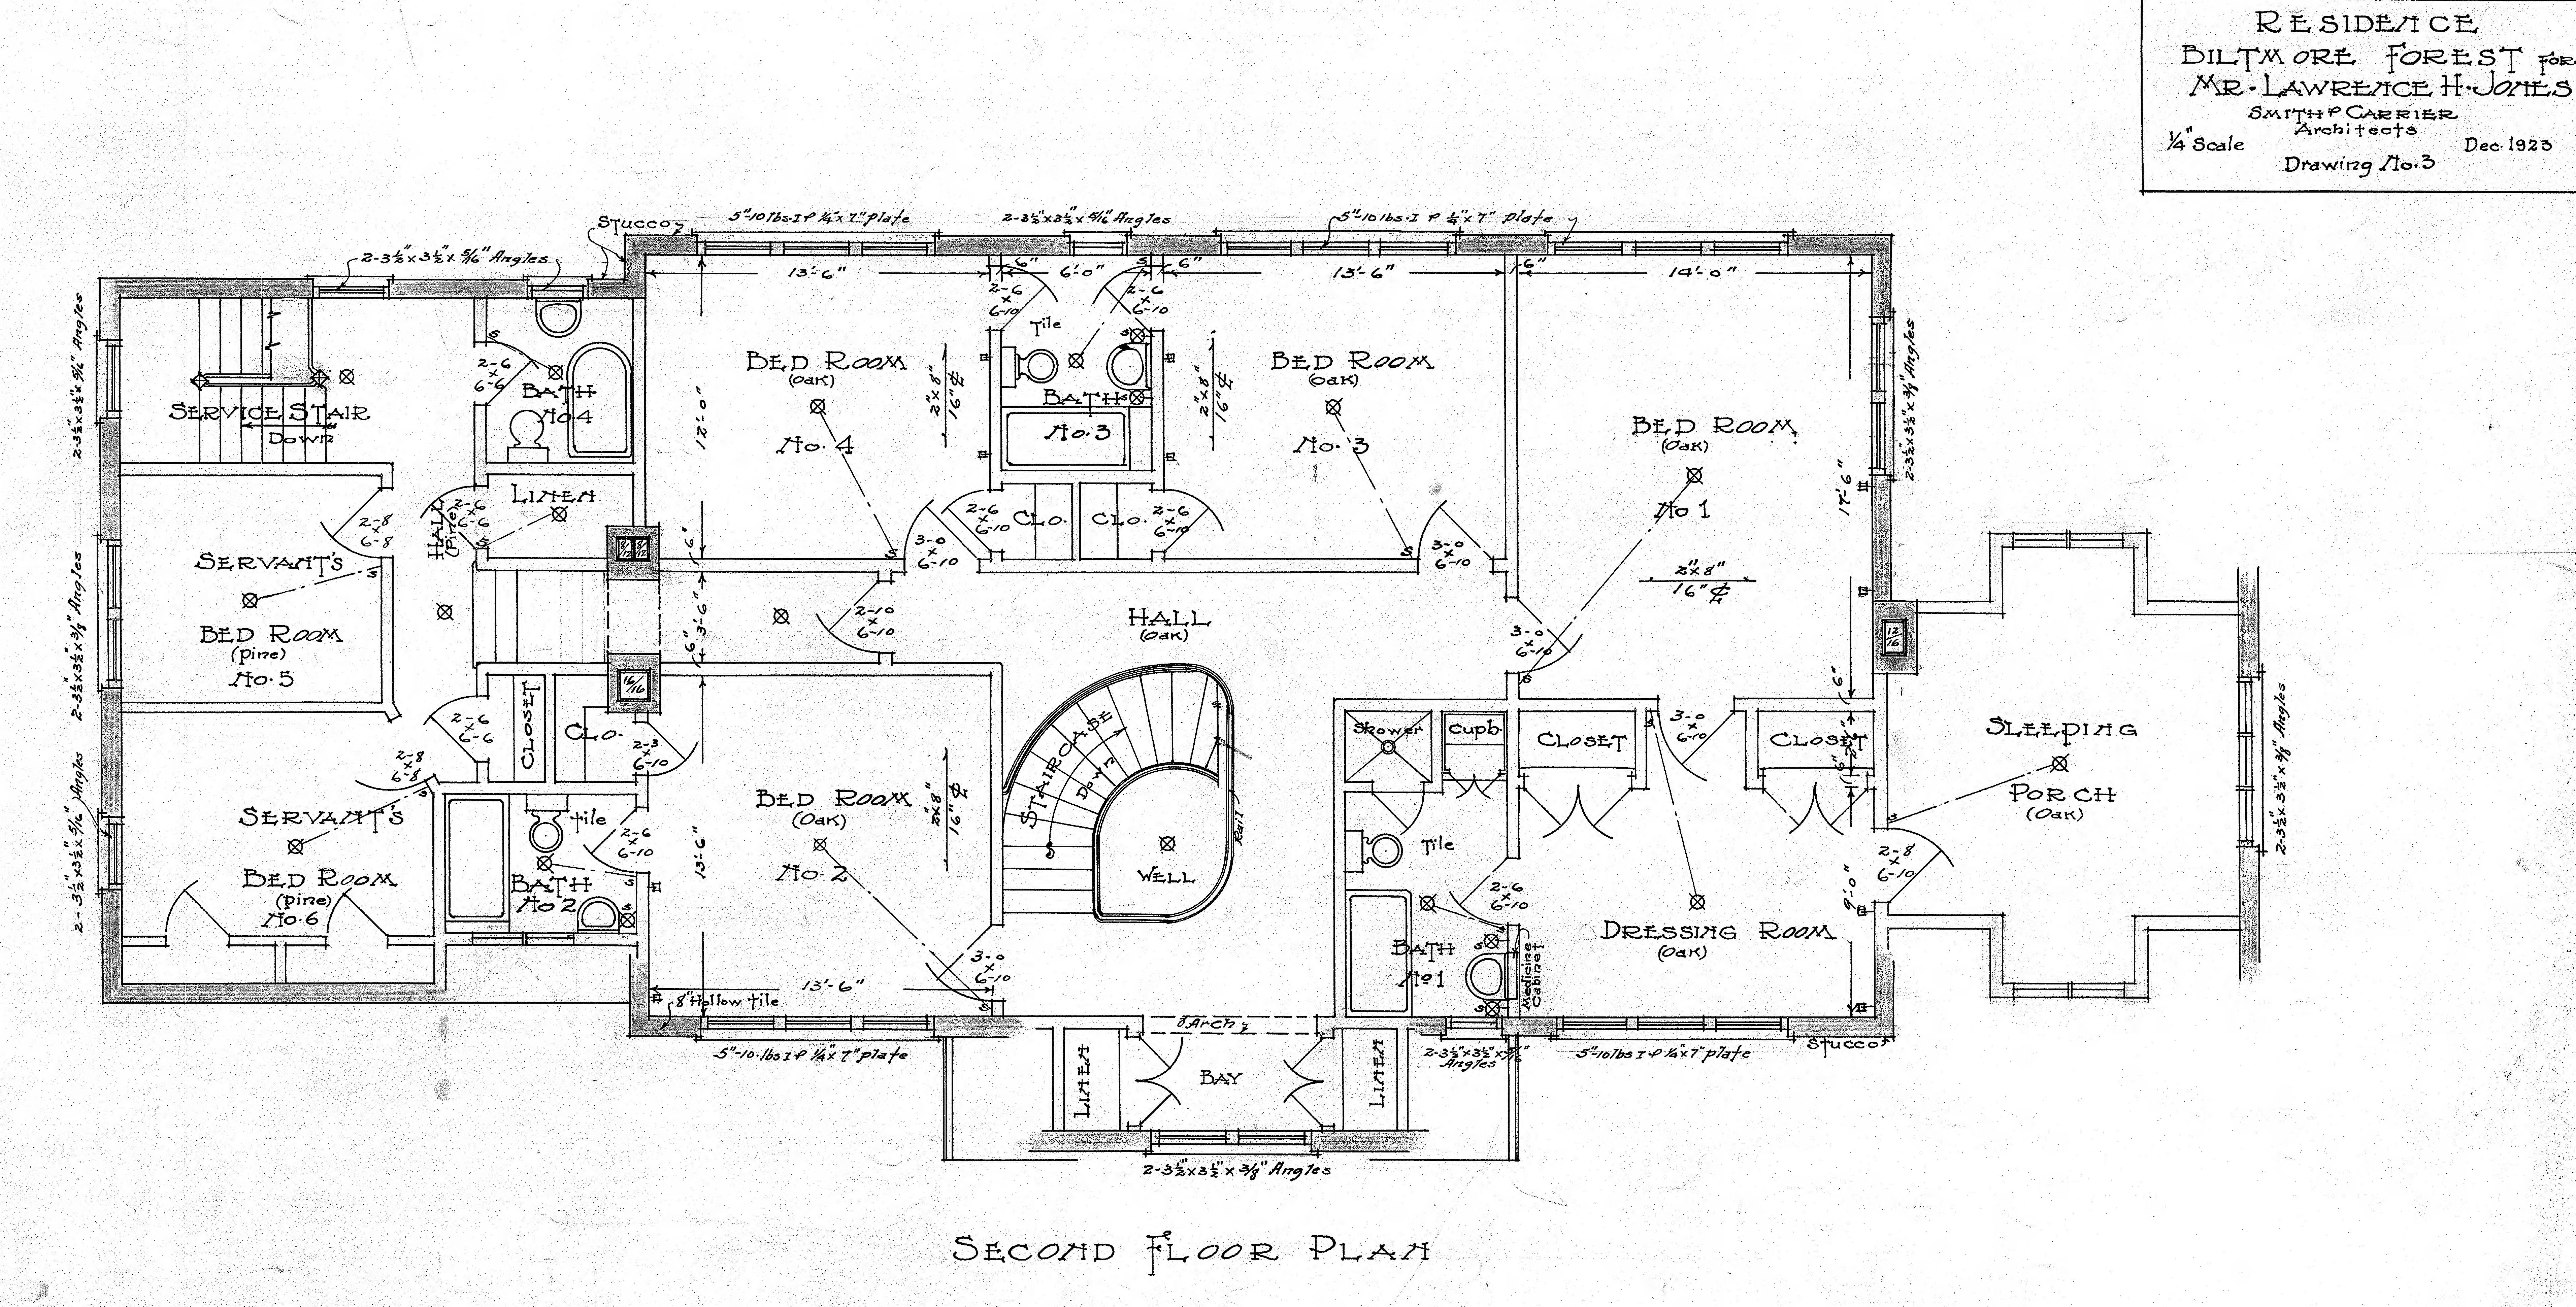 Residence biltmore forest mr lawrence h jones second for House sketch plan